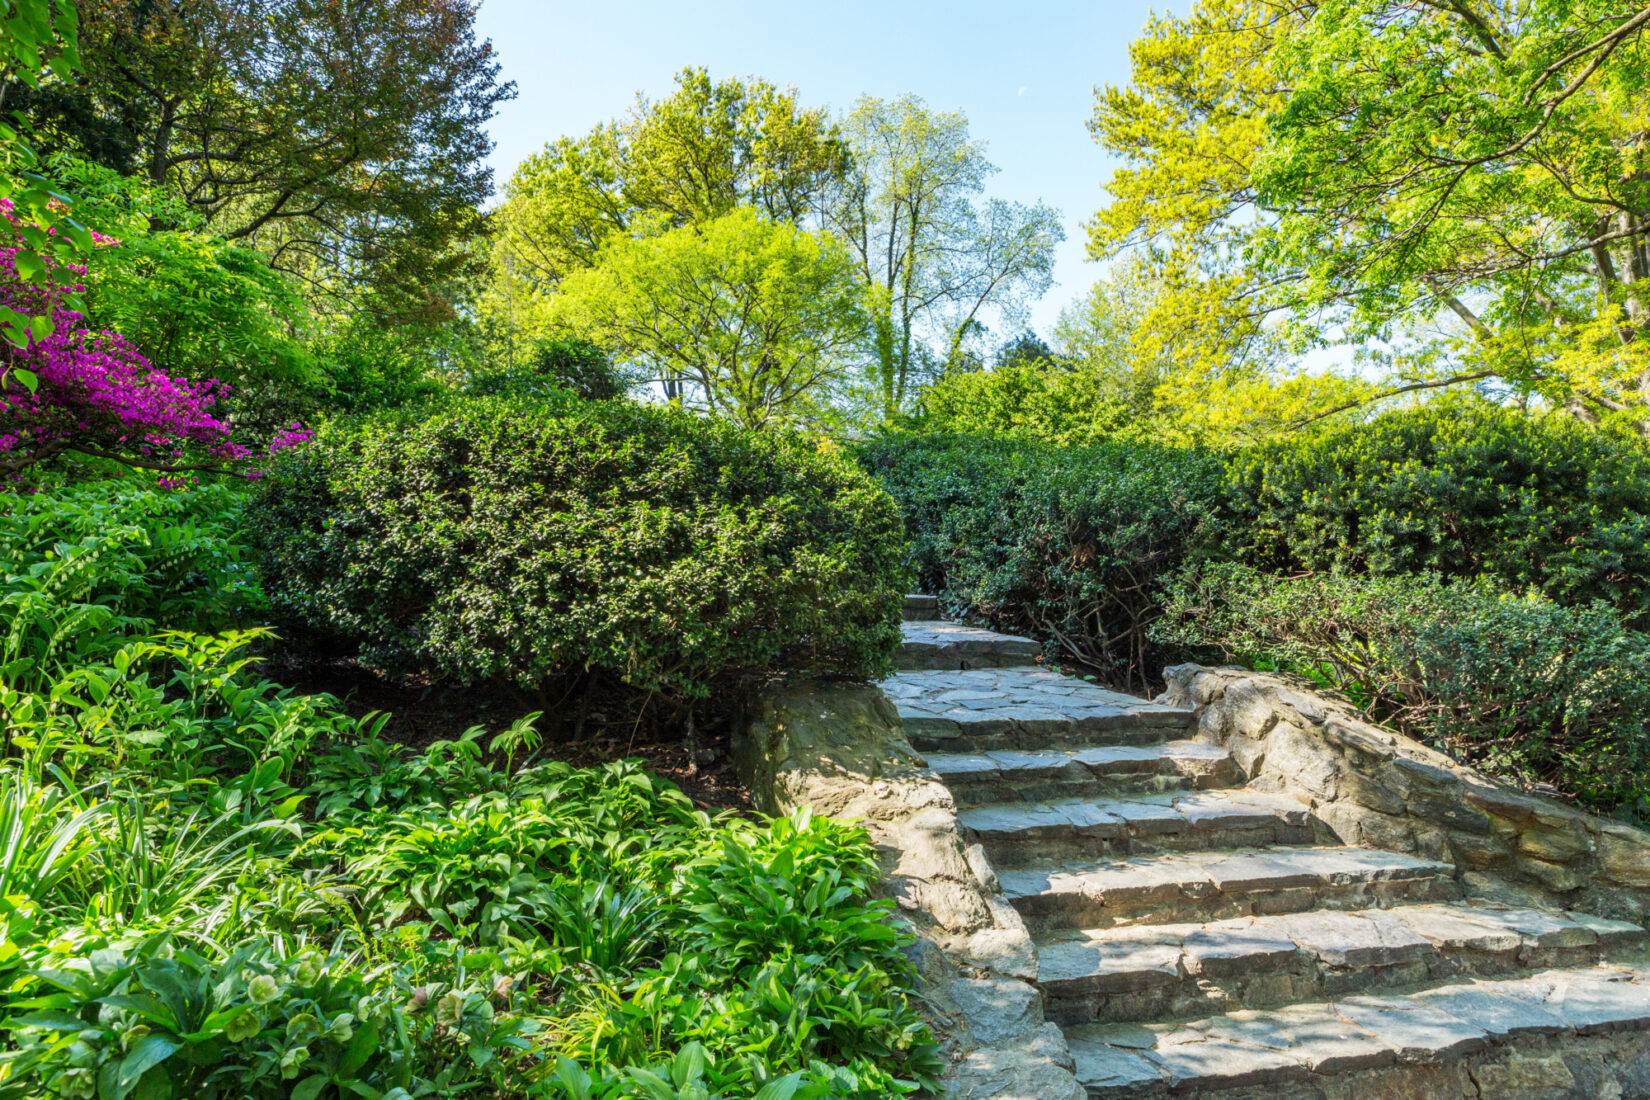 The stone steps leading up the Shakespeare Garden